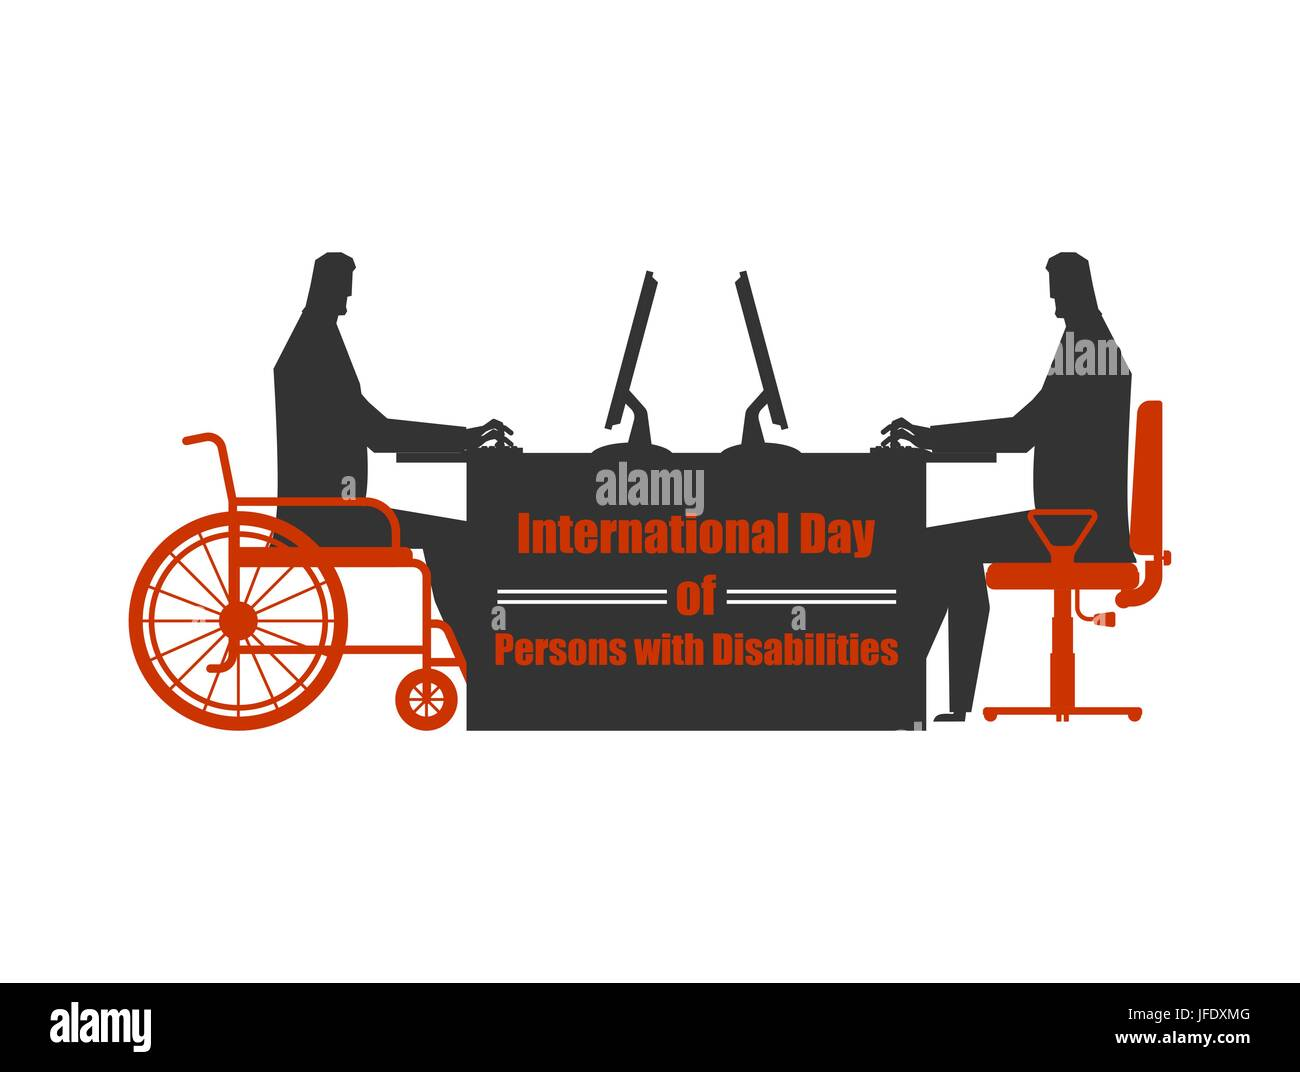 International Day Of Persons With Disabilities Disabled